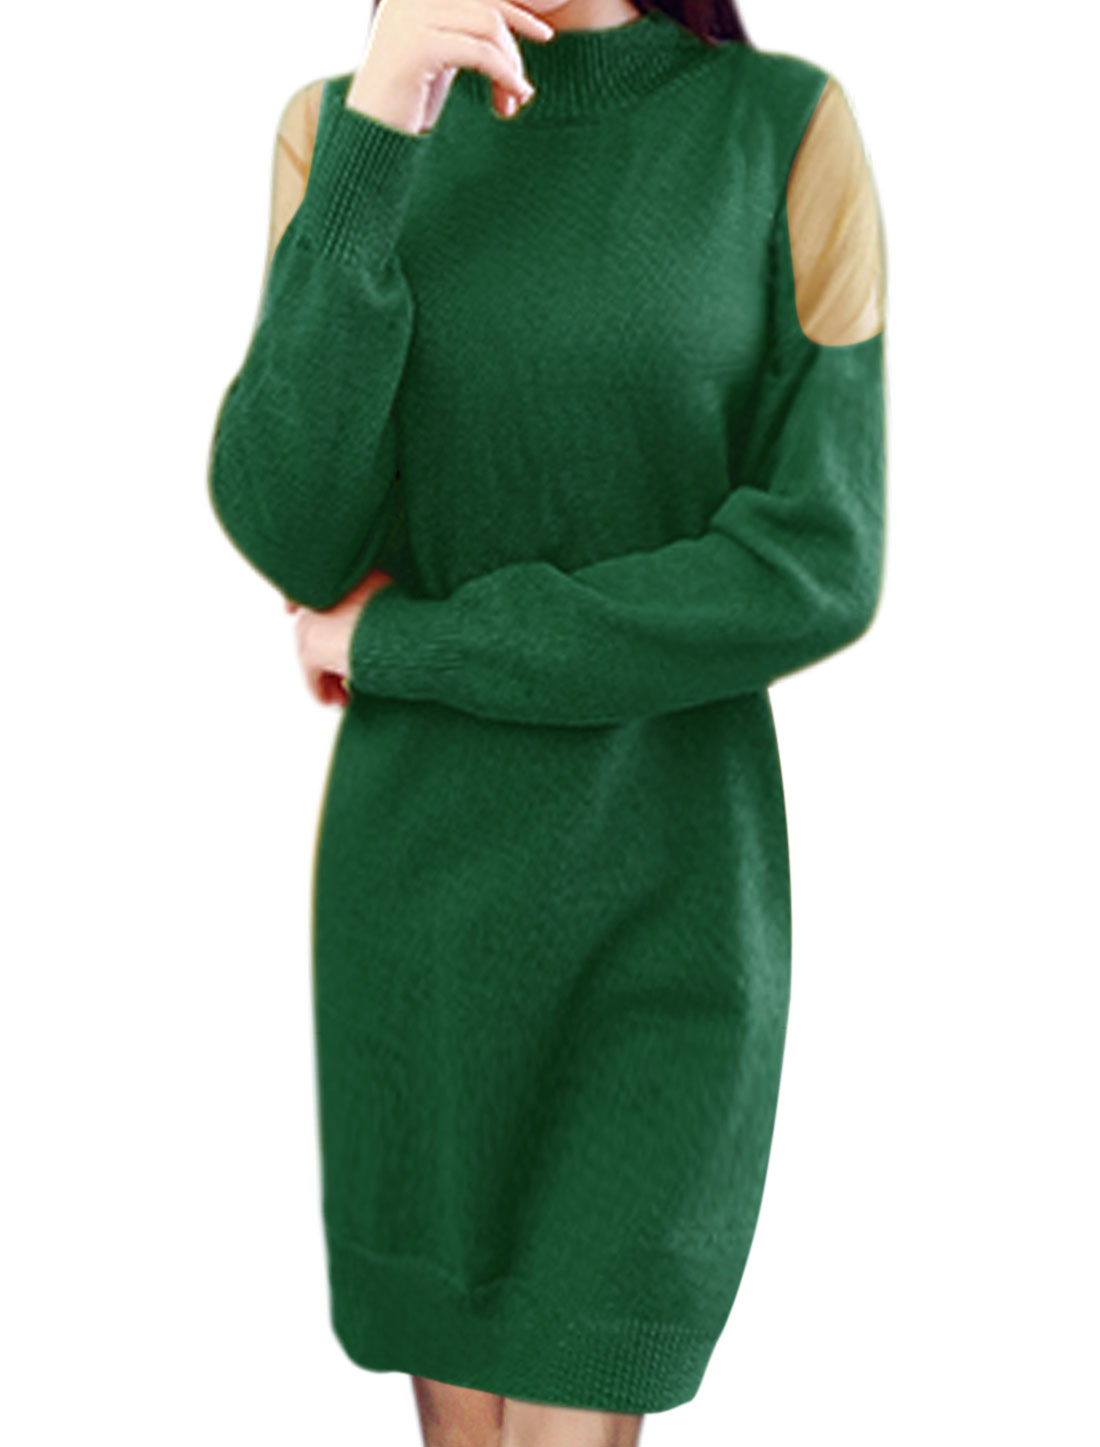 Ladies Mock Neck Mesh Panel Knitted Sheath Dress Green XS